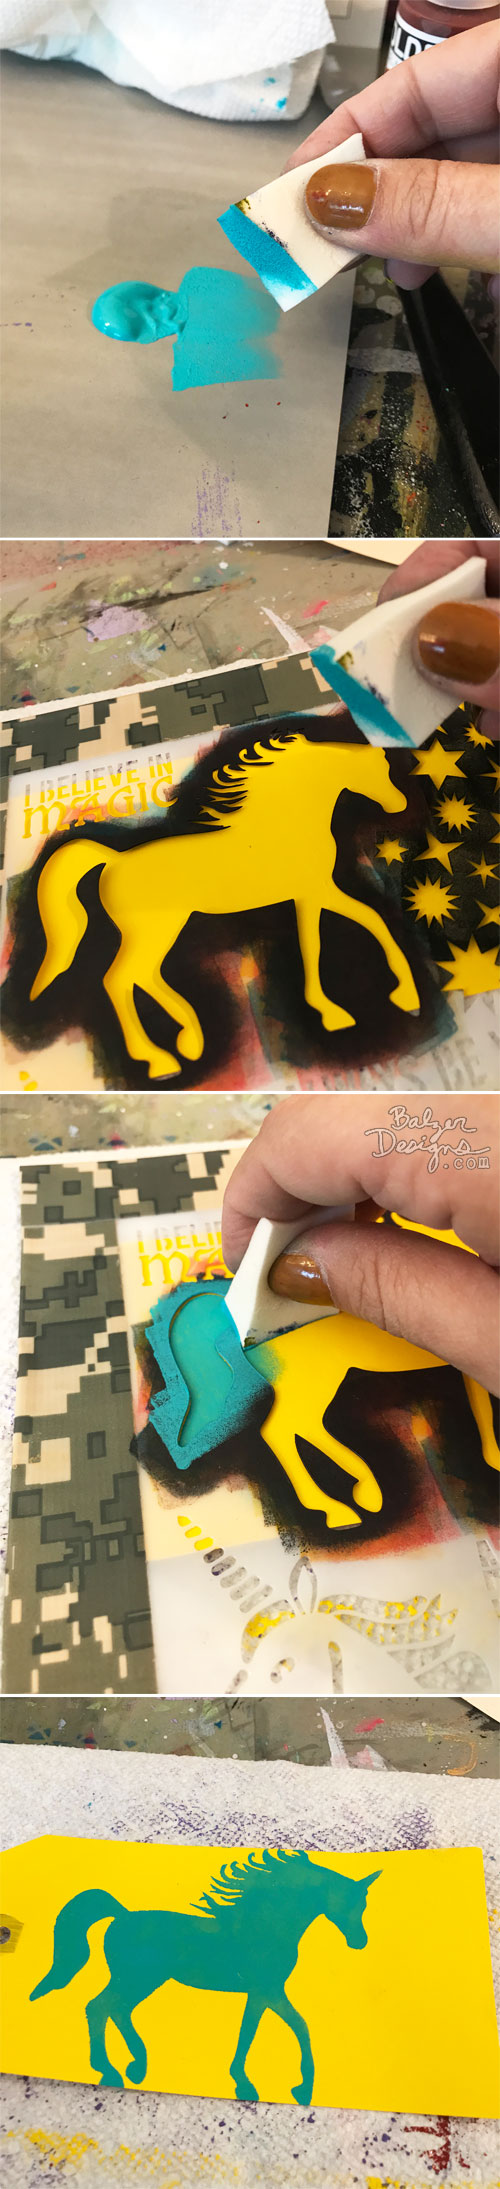 From the Balzer Designs Blog: Summer Stencil Techniques with Suzanne: Double it Up